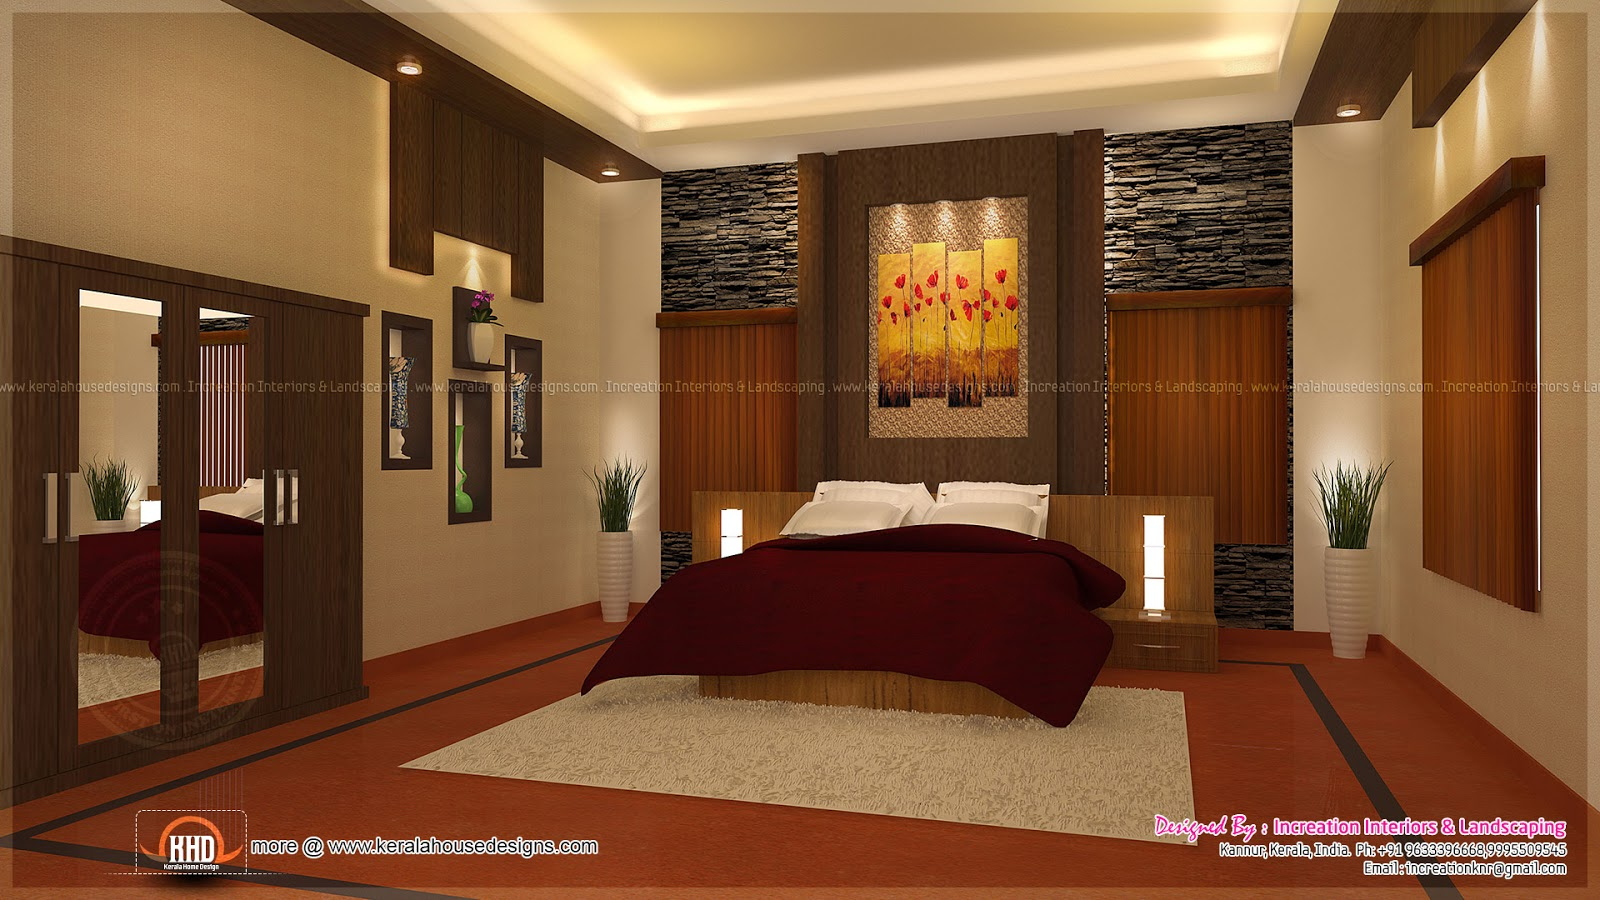 Master bedroom interior for Indoor design ideas indian